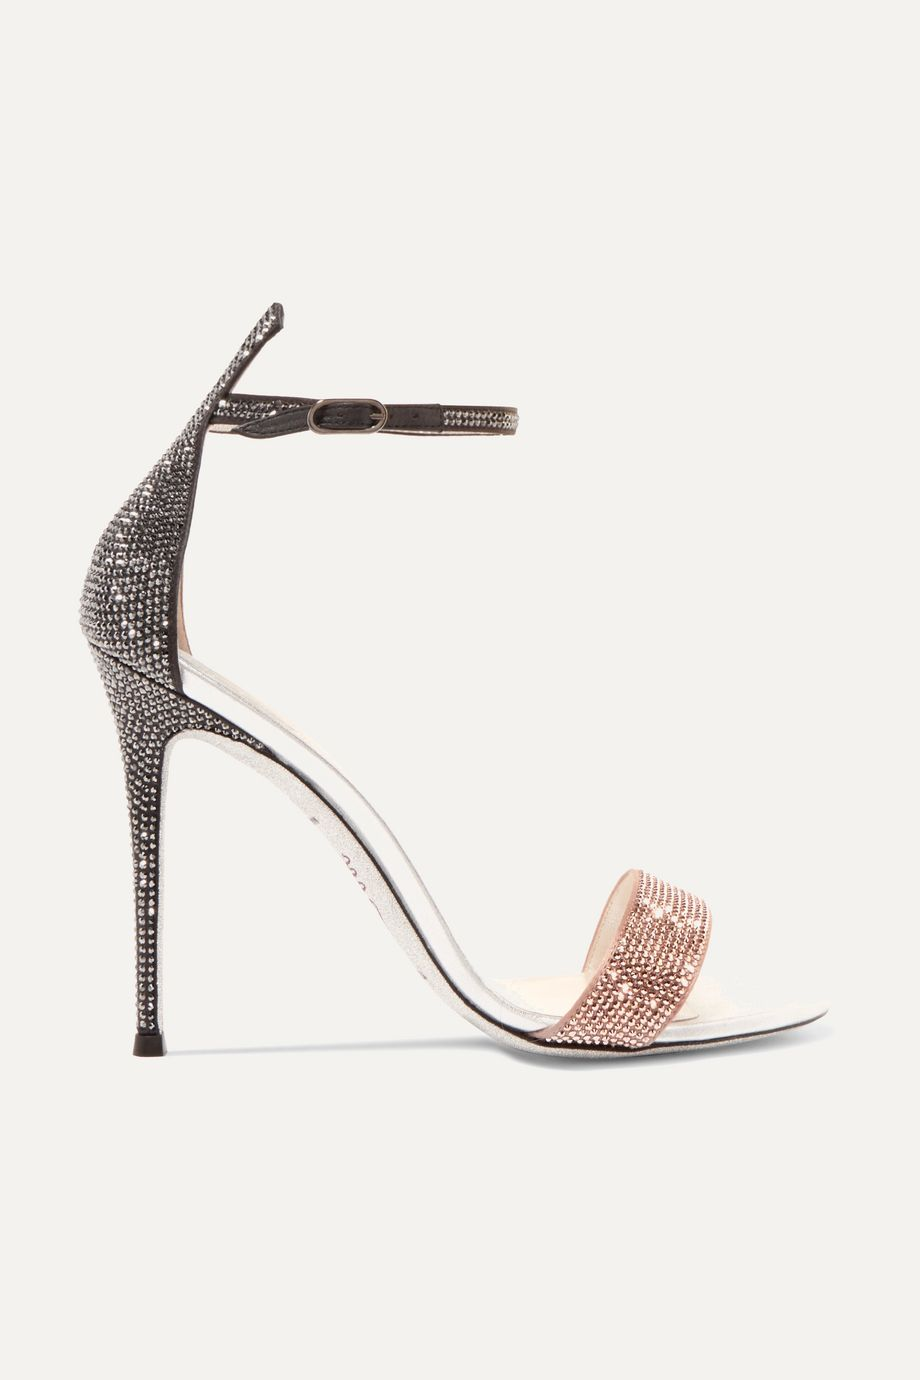 René Caovilla Crystal-embellished satin and leather sandals